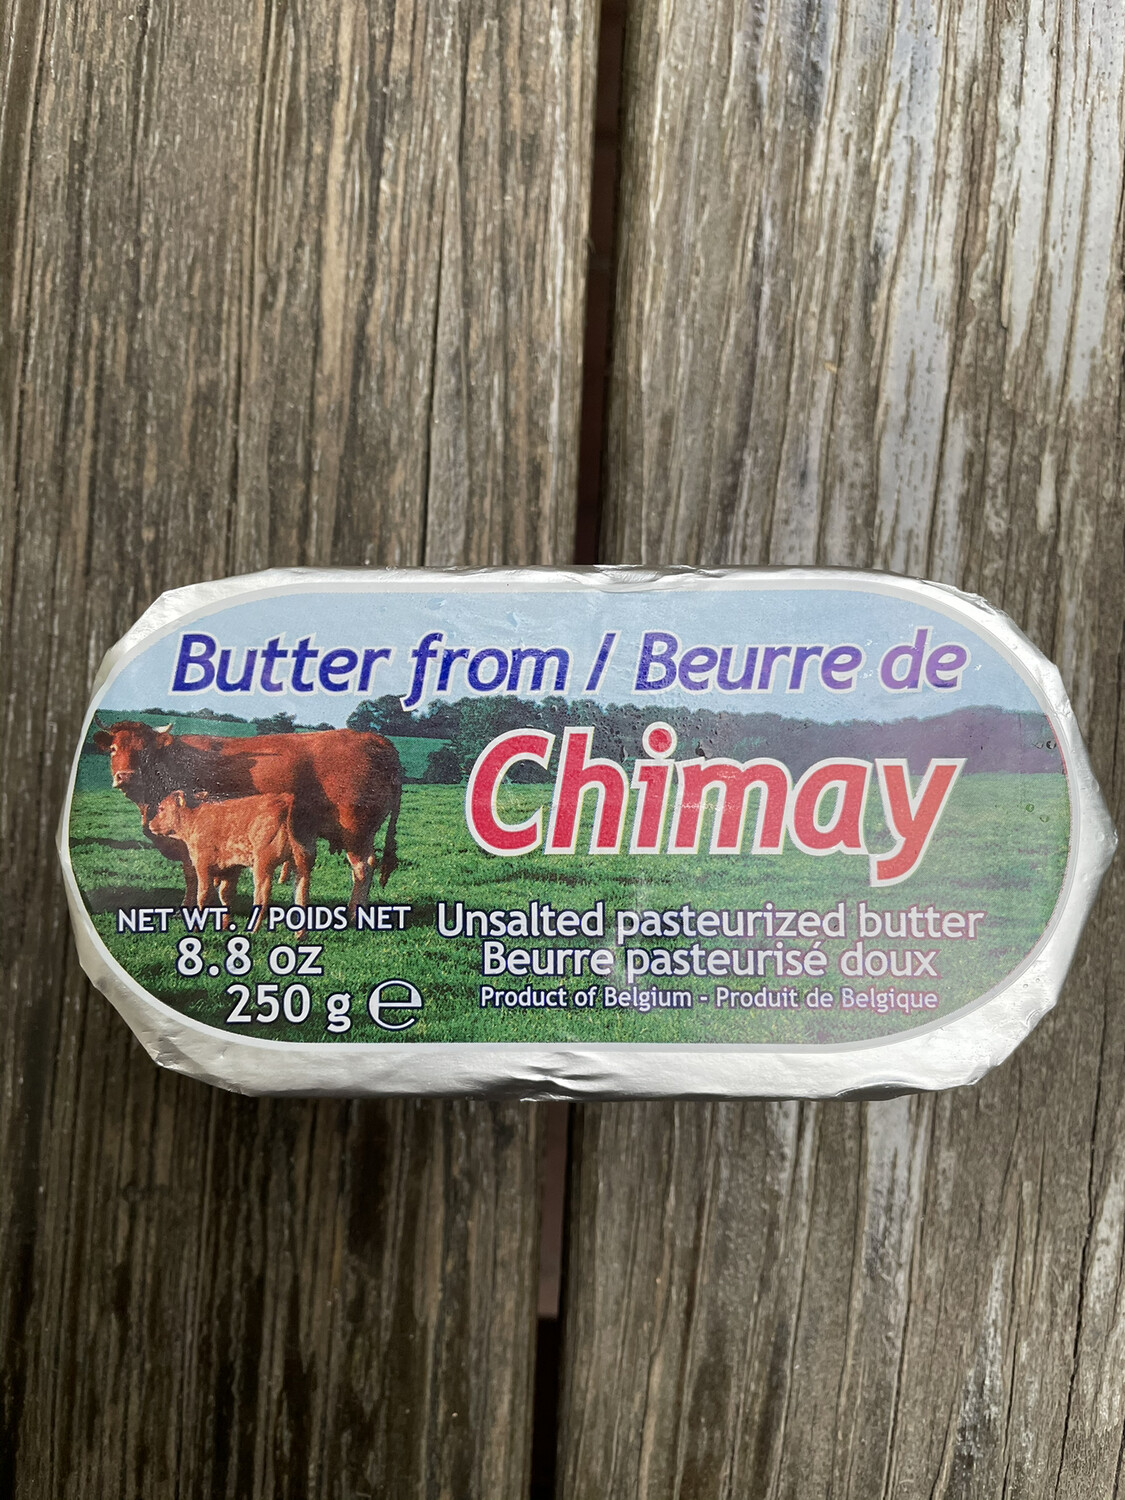 CHIMAY unsalted pasteurized butter